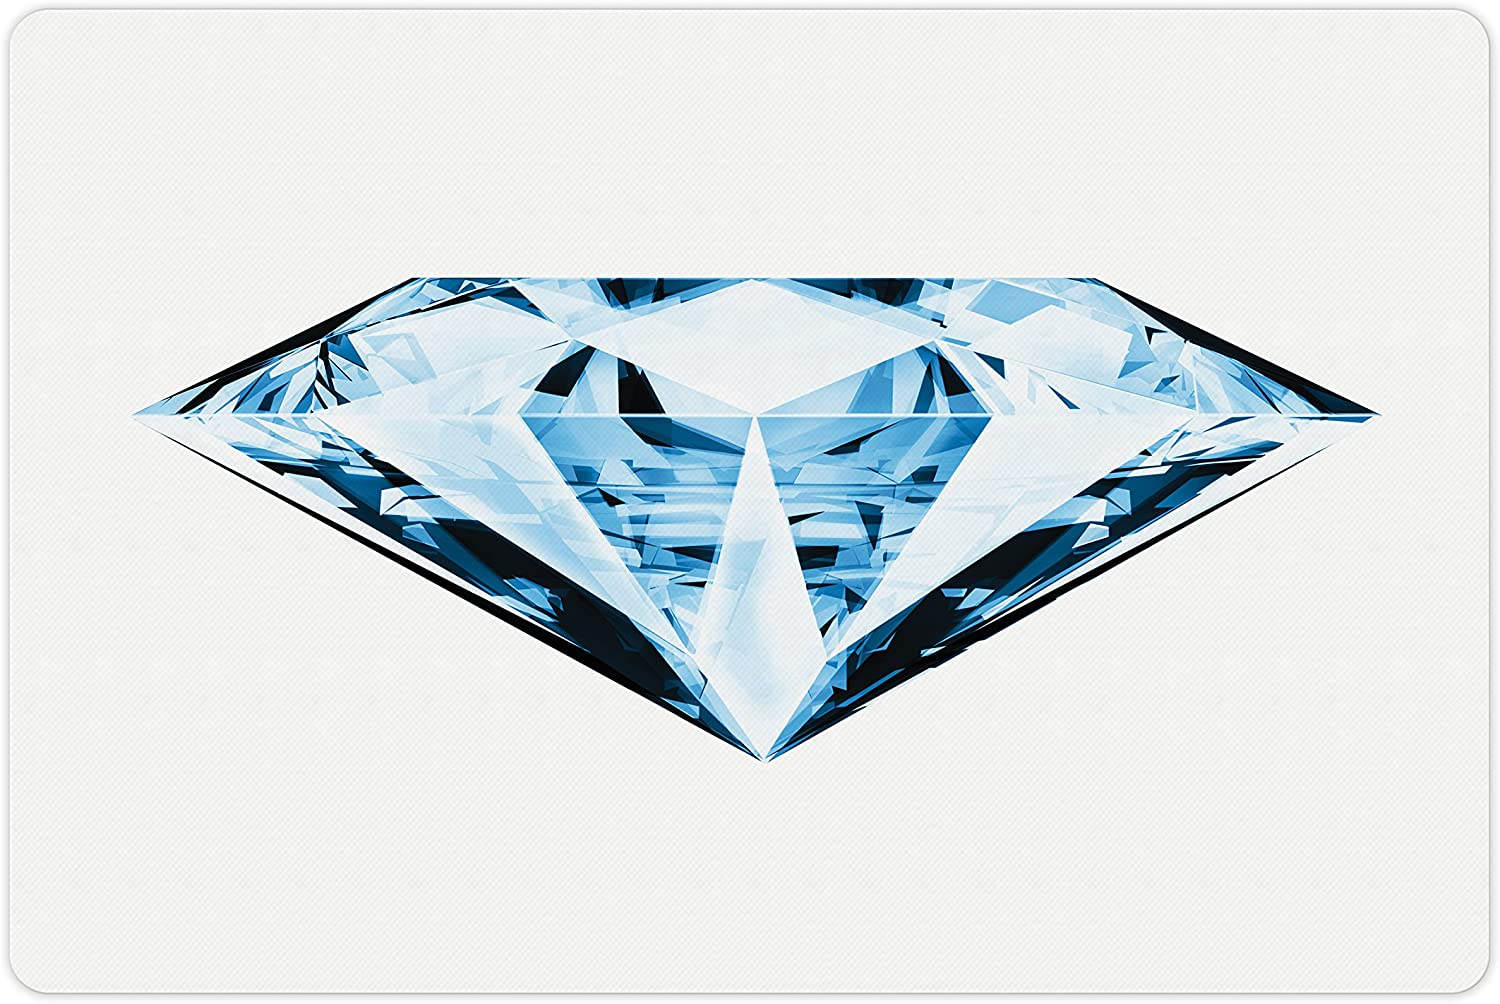 Lunarable Diamonds Pet Mat for Food and Water, Single Triangular Treasure in Blue Shades on a White Background, Rectangle Non-Slip Rubber Mat for Dogs and Cats, Pale Blue Dark Blue